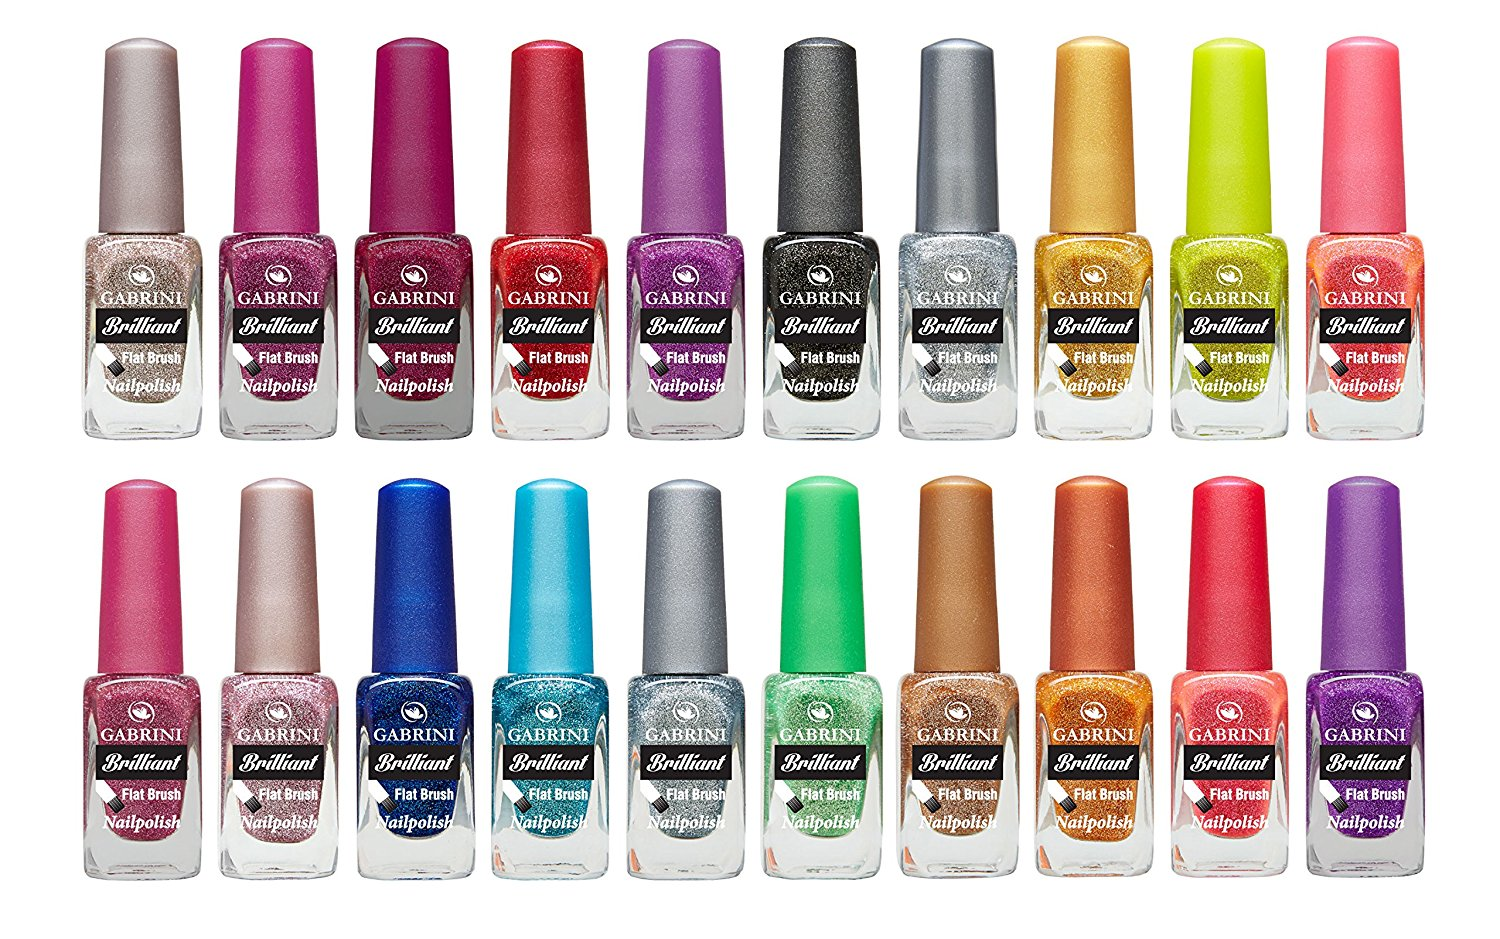 Gabrini Brilliant Nail Polish Set 20 Colors Glitter 13ml 0 44 Fl Oz In Price On M Alibaba